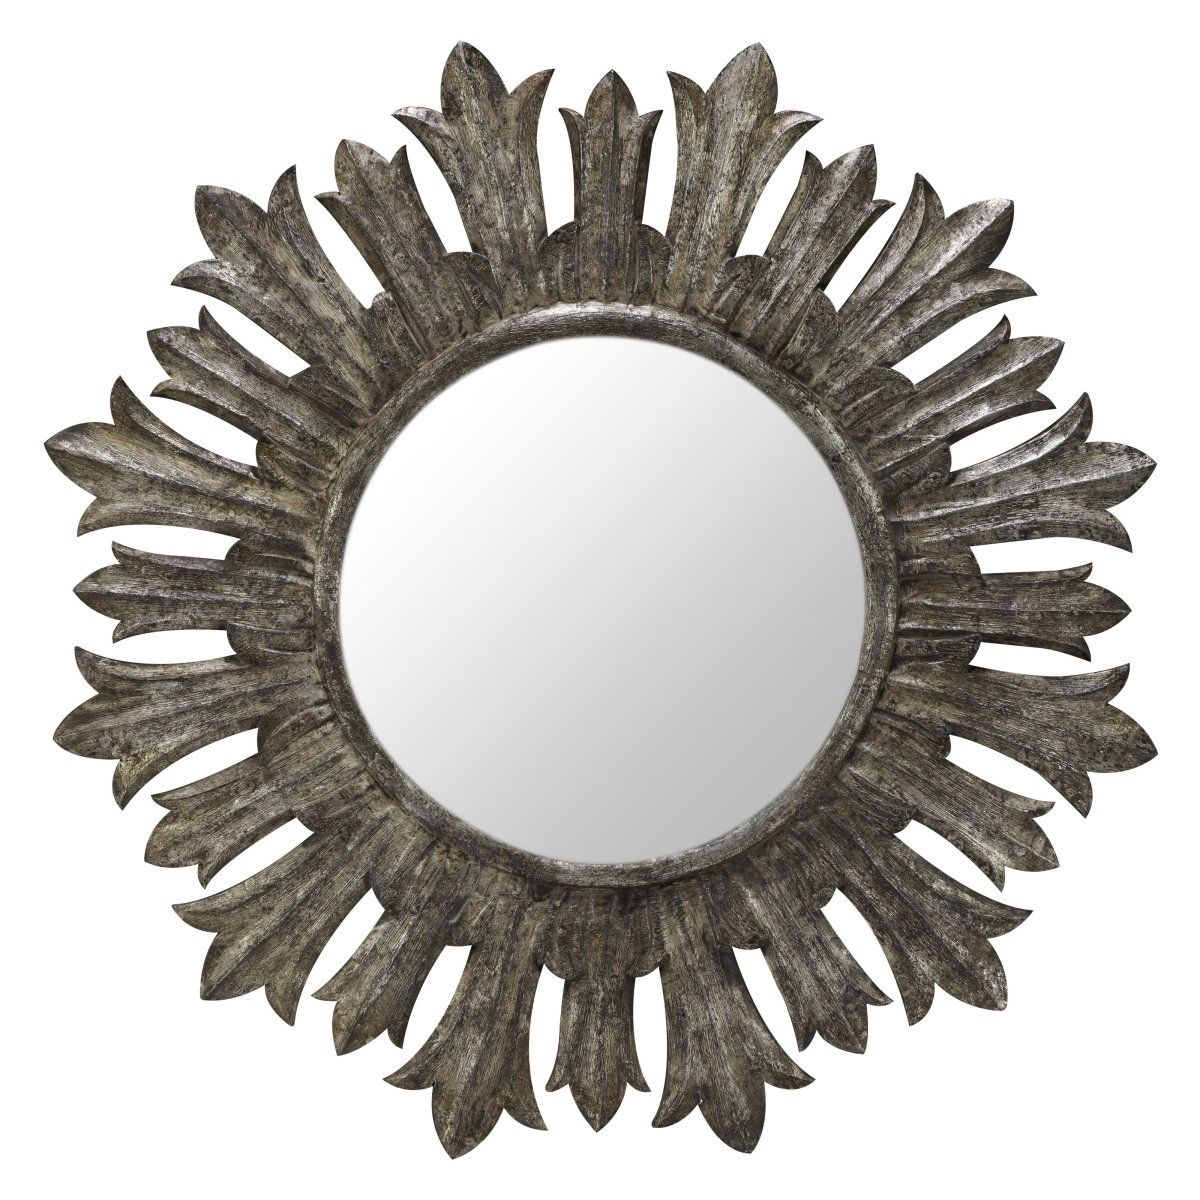 Fairview Silver Crackle Decorative Oversized Mirror - 36 diam.